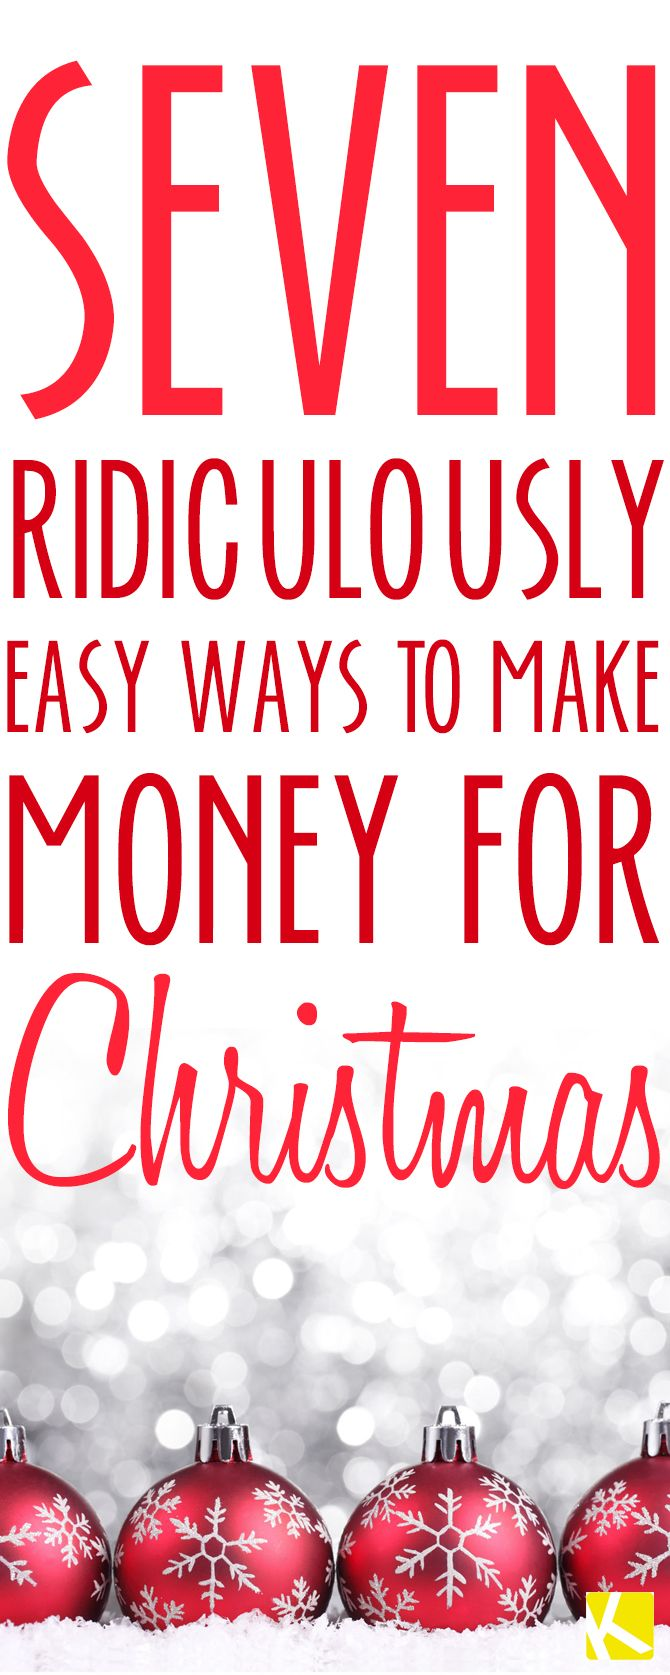 7+Ridiculously+Easy+Ways+to+Make+Money+for+Christmas